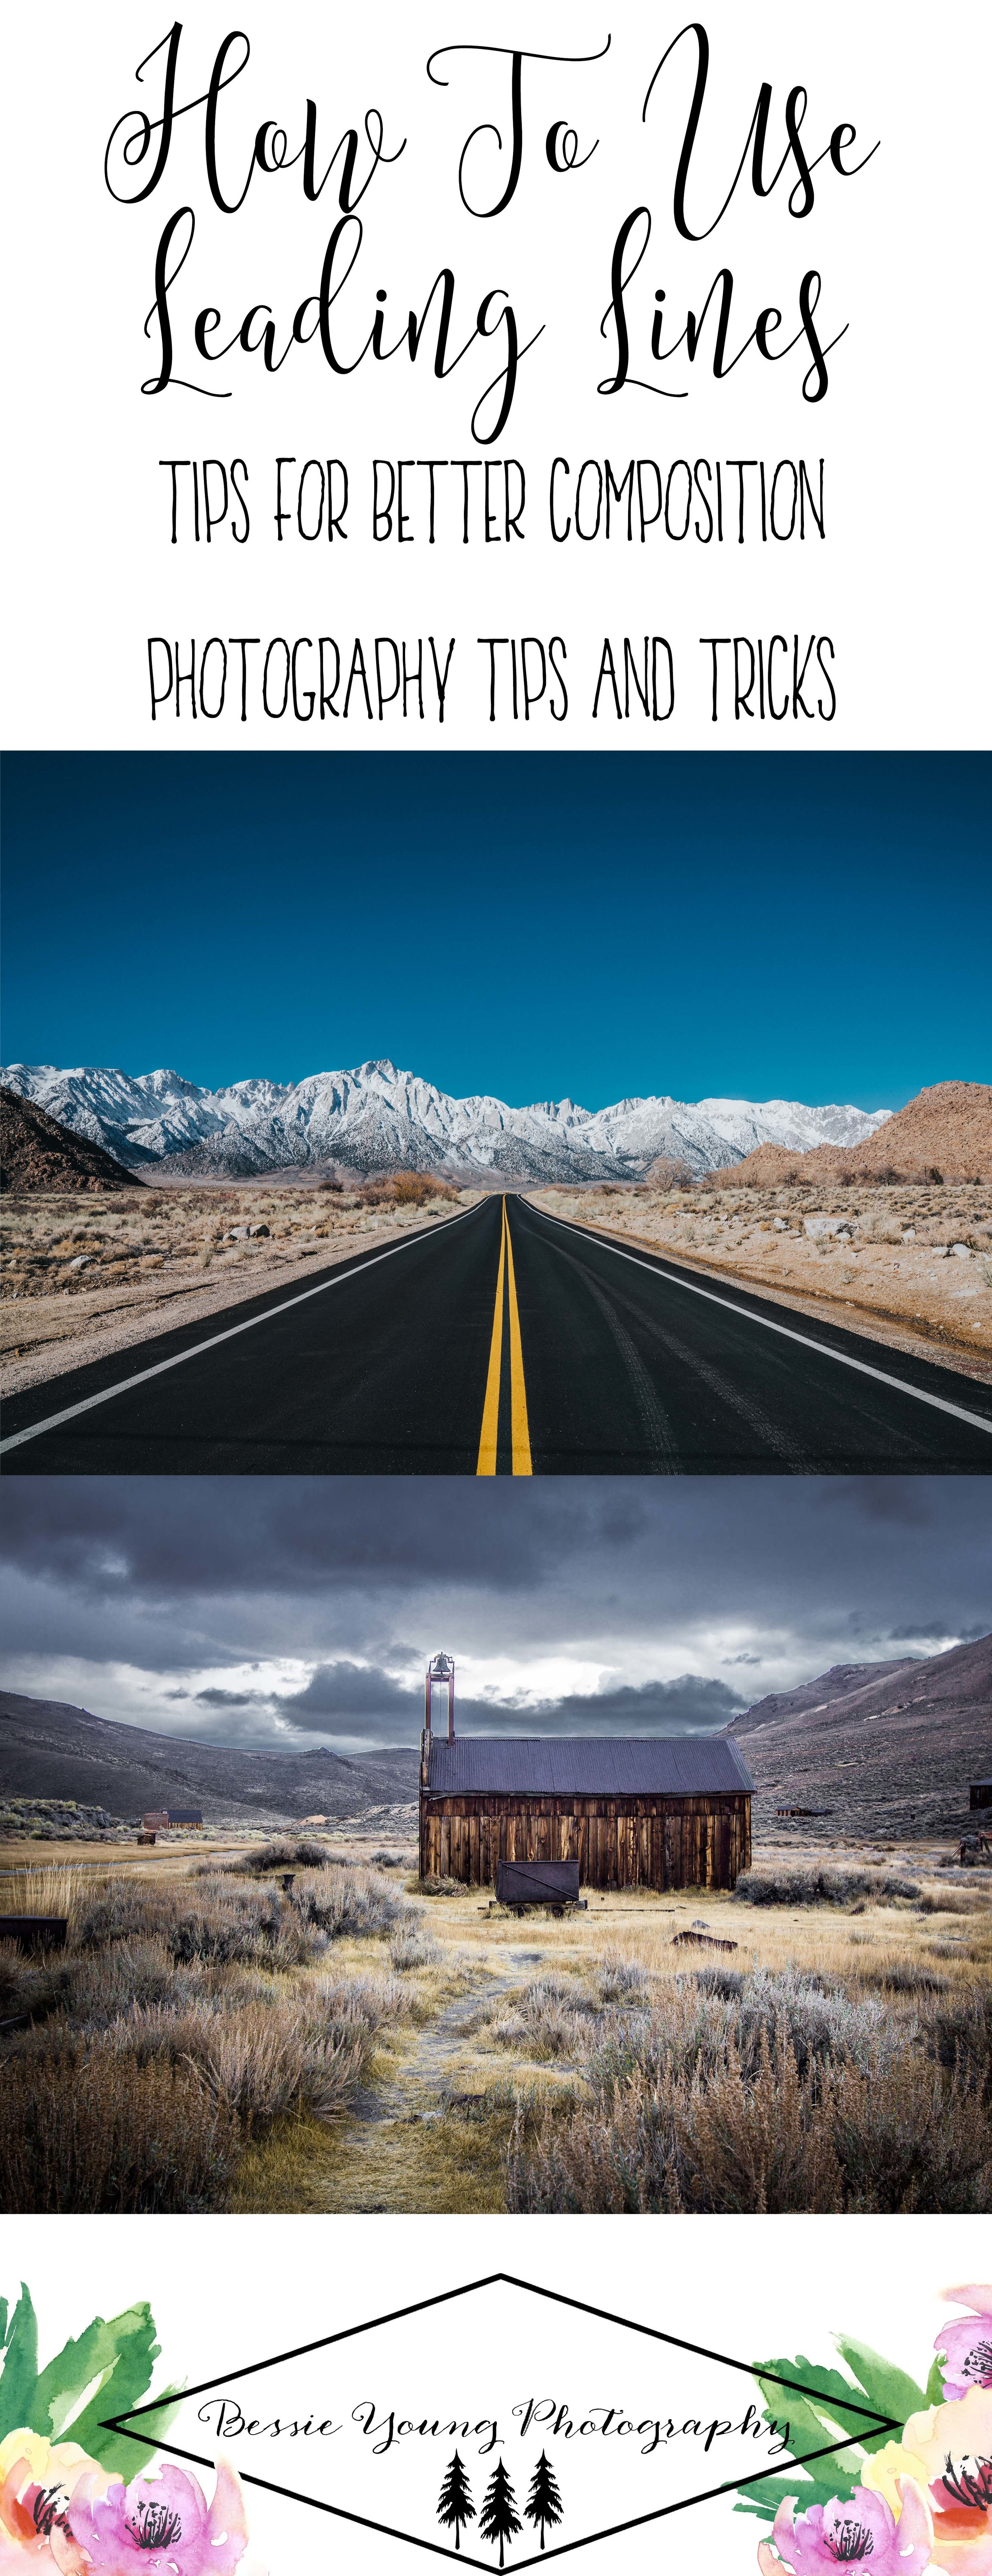 How To Use Leading Lines - Tips for Better Composition - Photography Tips and Tricks by Bessie Young Photography